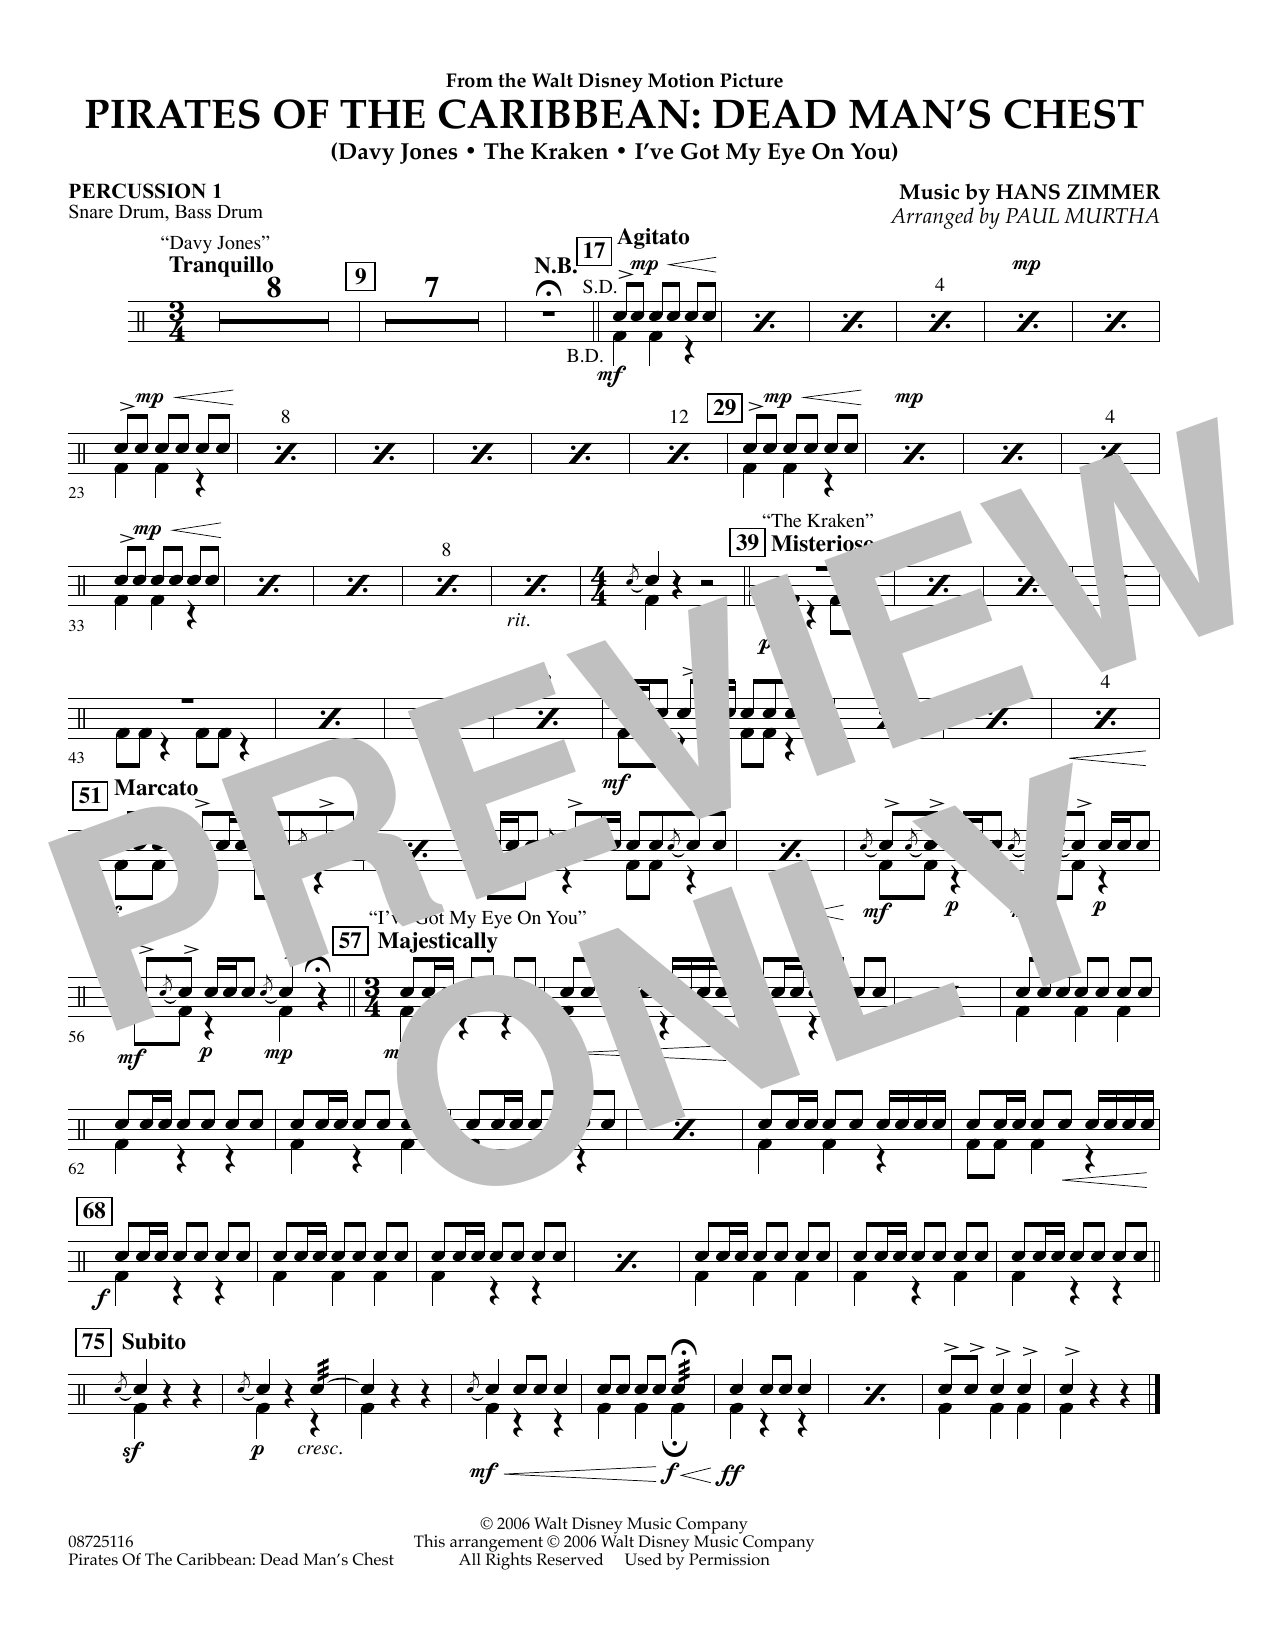 Paul Murtha Pirates of the Caribbean: Dead Man's Chest - Percussion 1 sheet music preview music notes and score for Concert Band including 1 page(s)